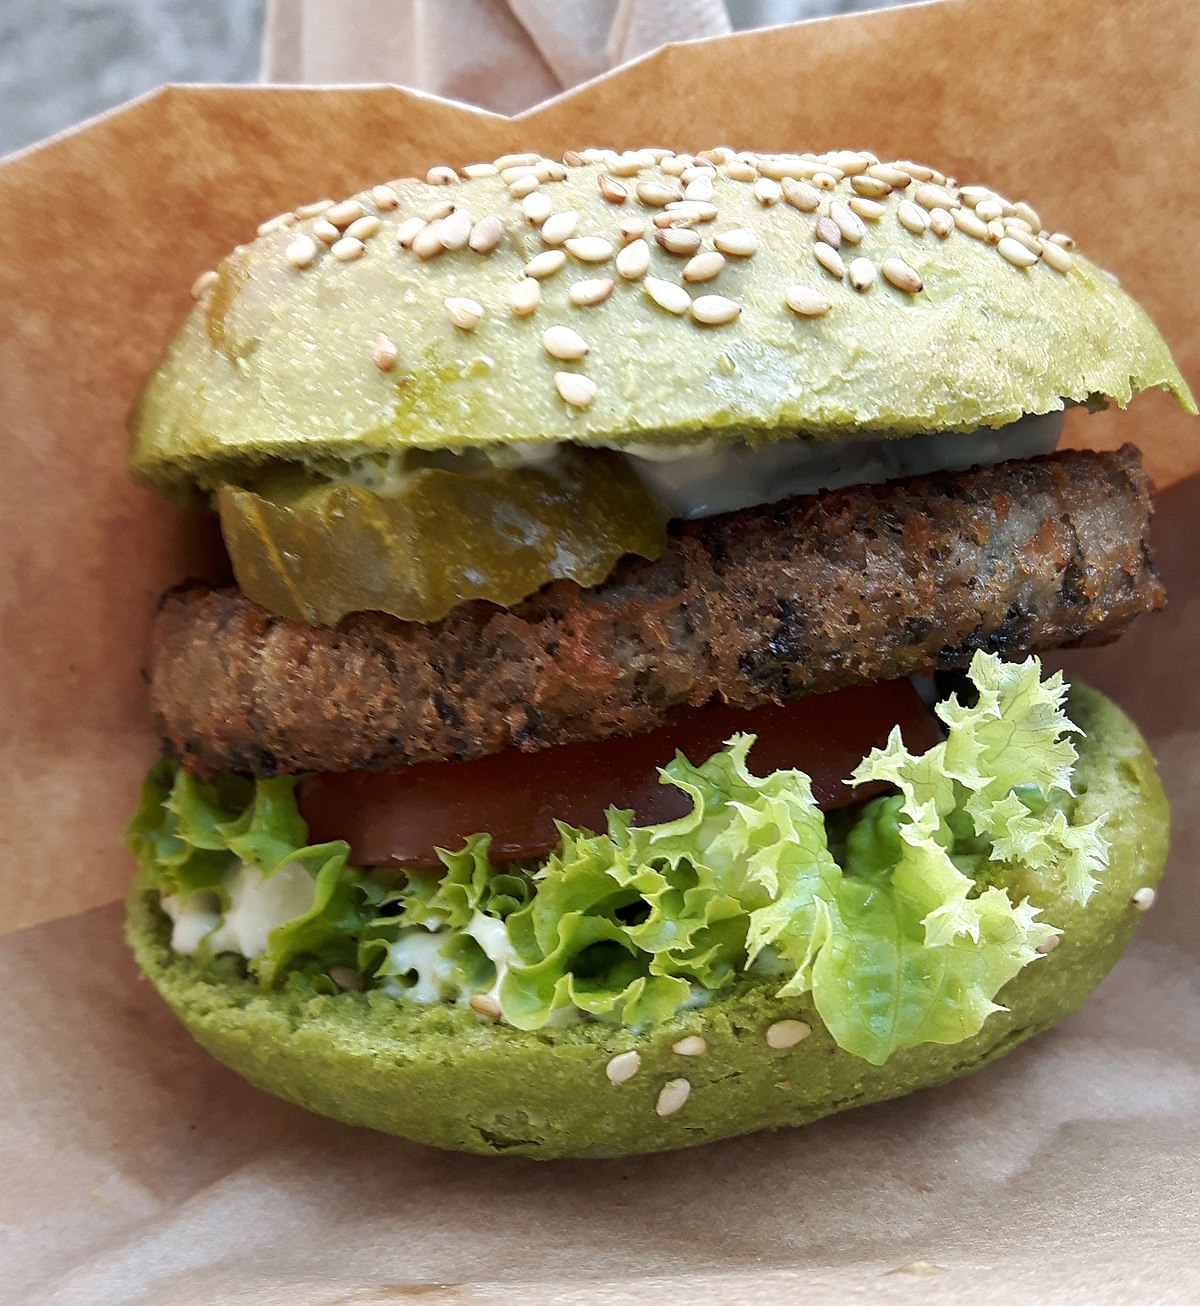 How to Make Weed Burger